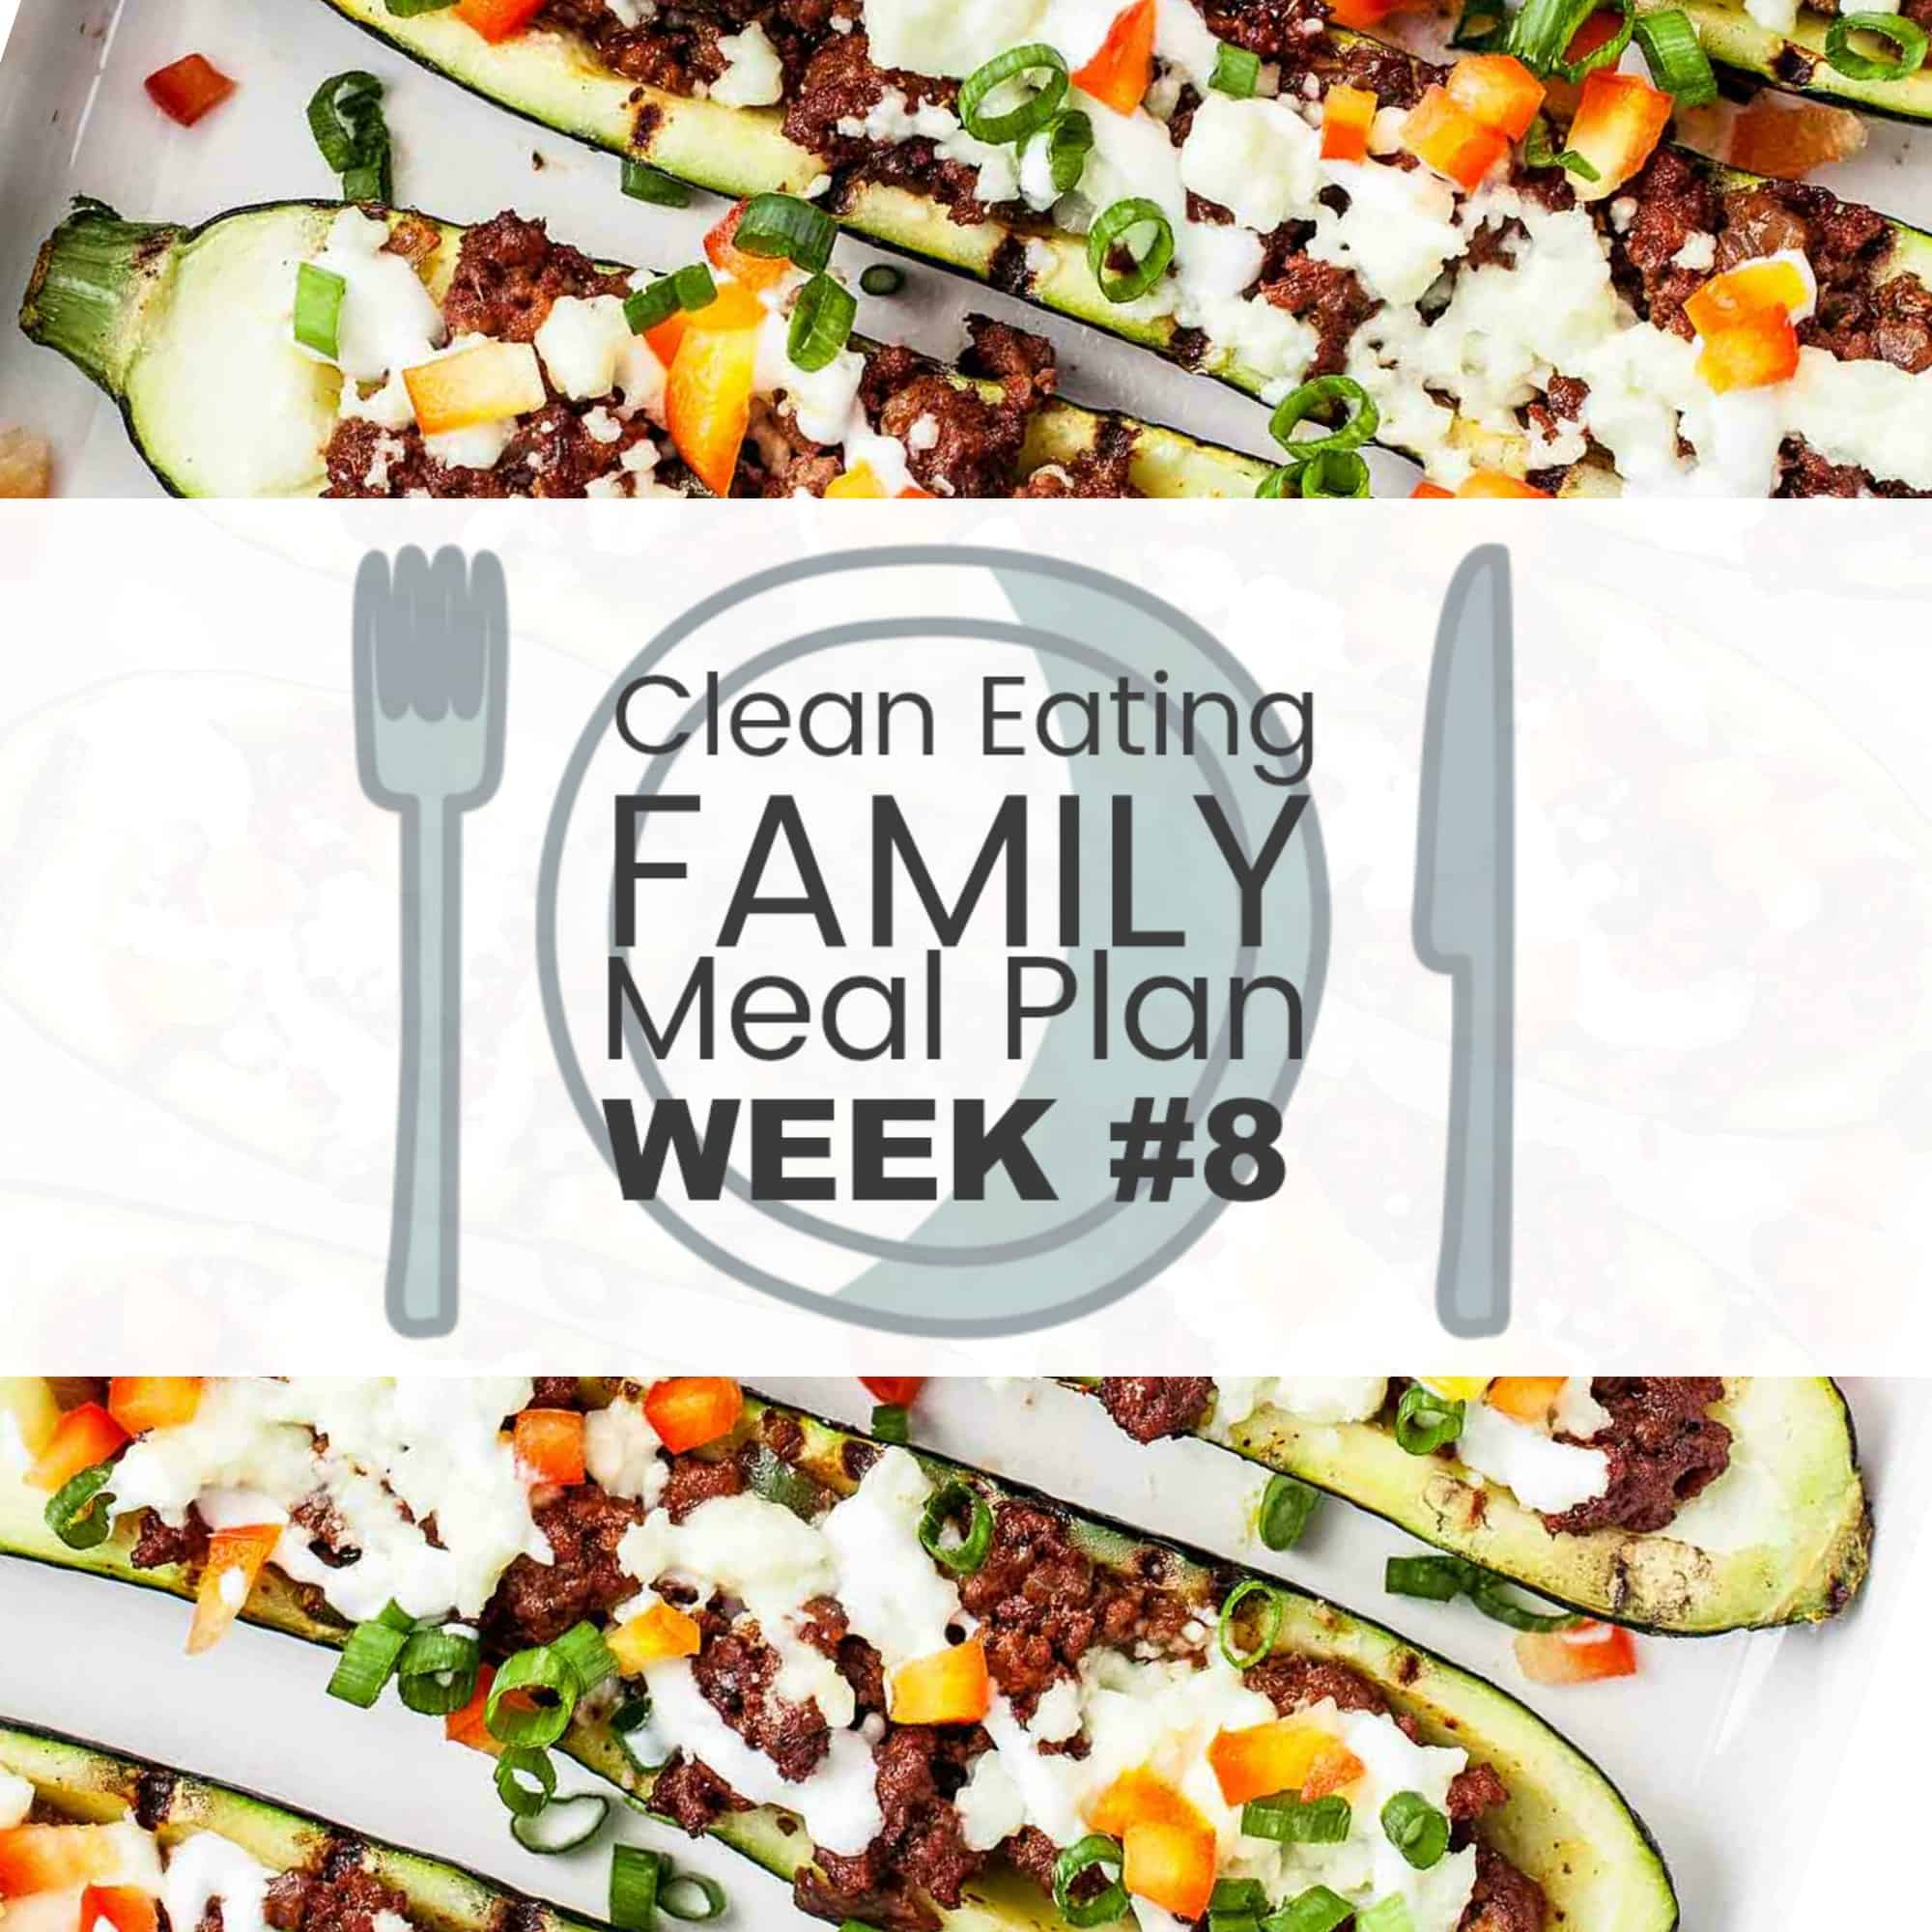 Clean Eating with Kids Meal Plan #8 - Fast and Easy is the focus of this week's family meal plan. #cleaneating #cleaneatingmealplan #cleaneatingrecipes #weeklymealplan